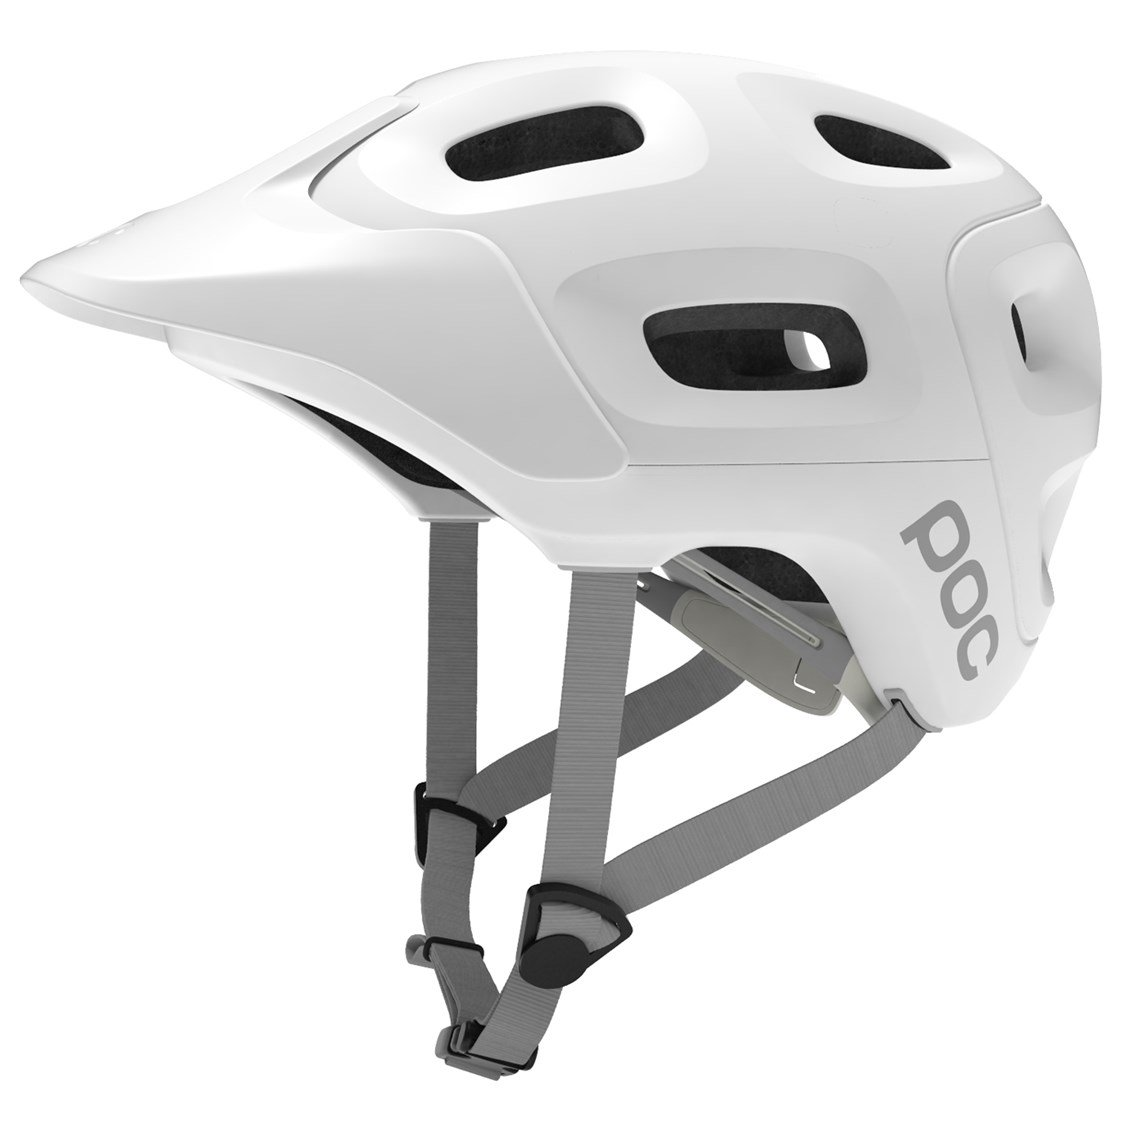 POC Trabec Bike Helmet, Hydrogen White, Medium/Large by POC